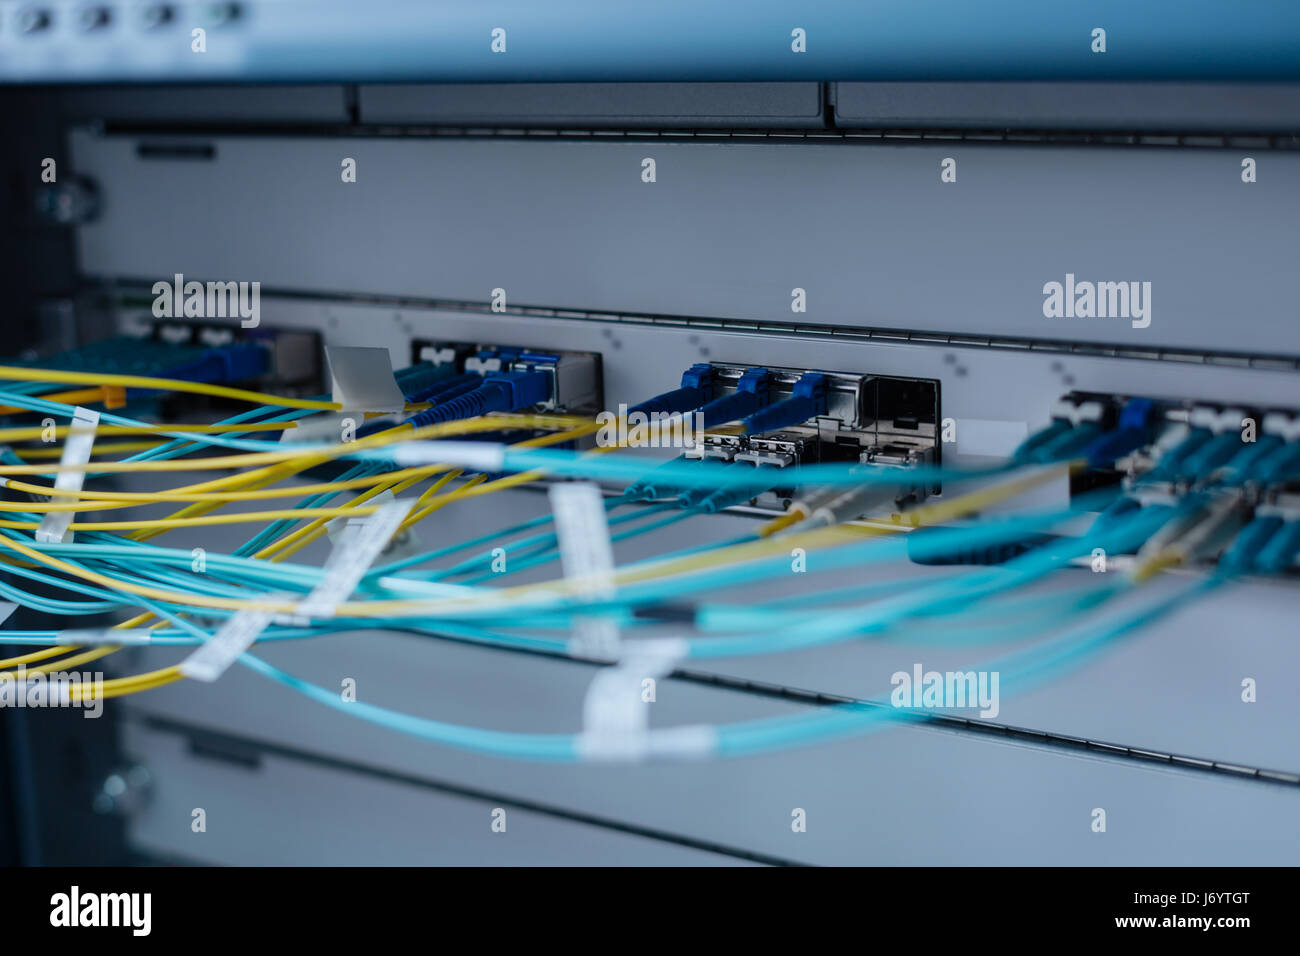 network switch ethernet cables stockfotos network switch ethernet cables bilder alamy. Black Bedroom Furniture Sets. Home Design Ideas